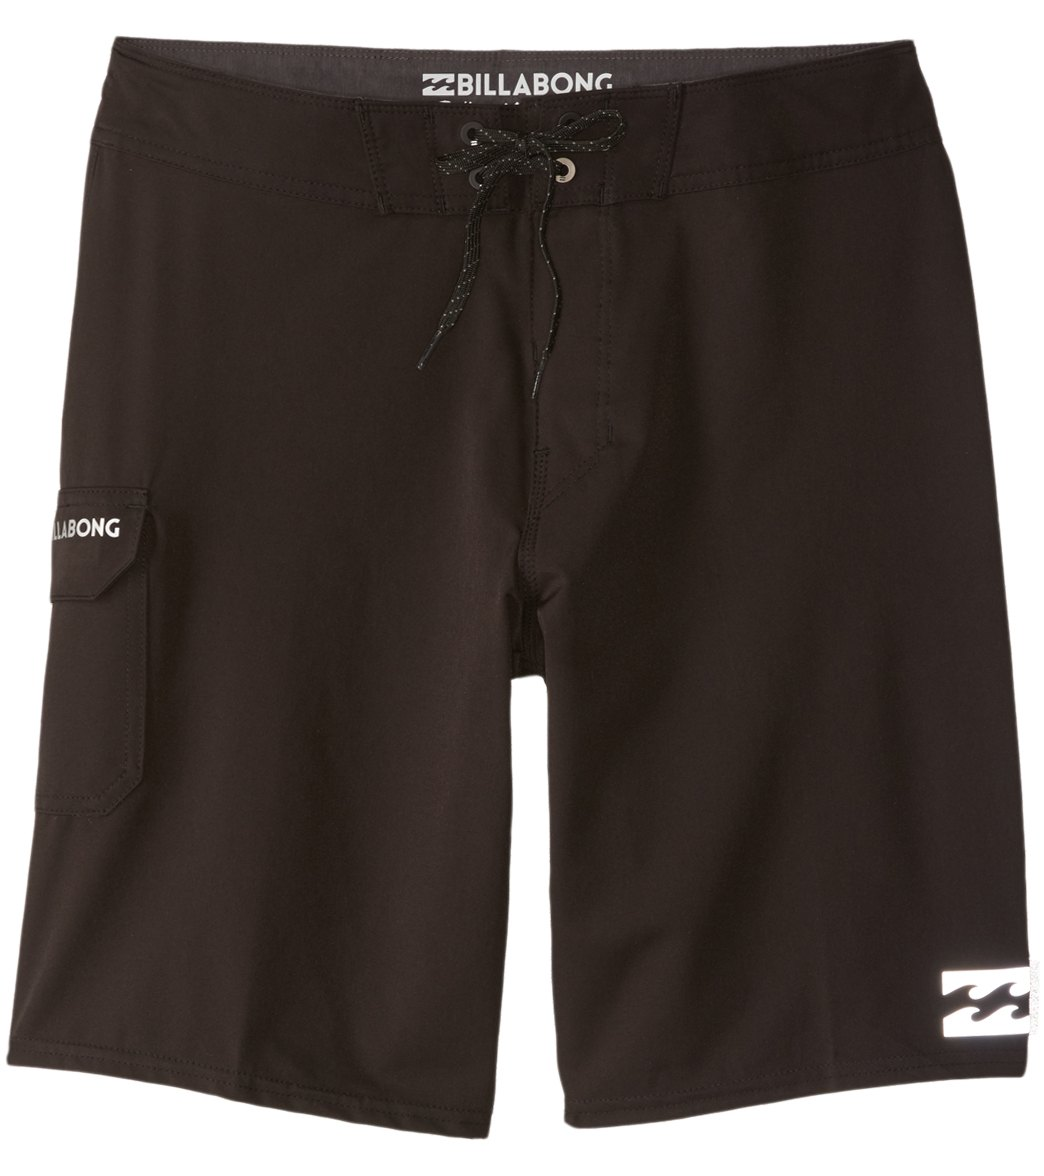 72812404fa Billabong Men's All Day X Boardshorts at SwimOutlet.com - Free Shipping